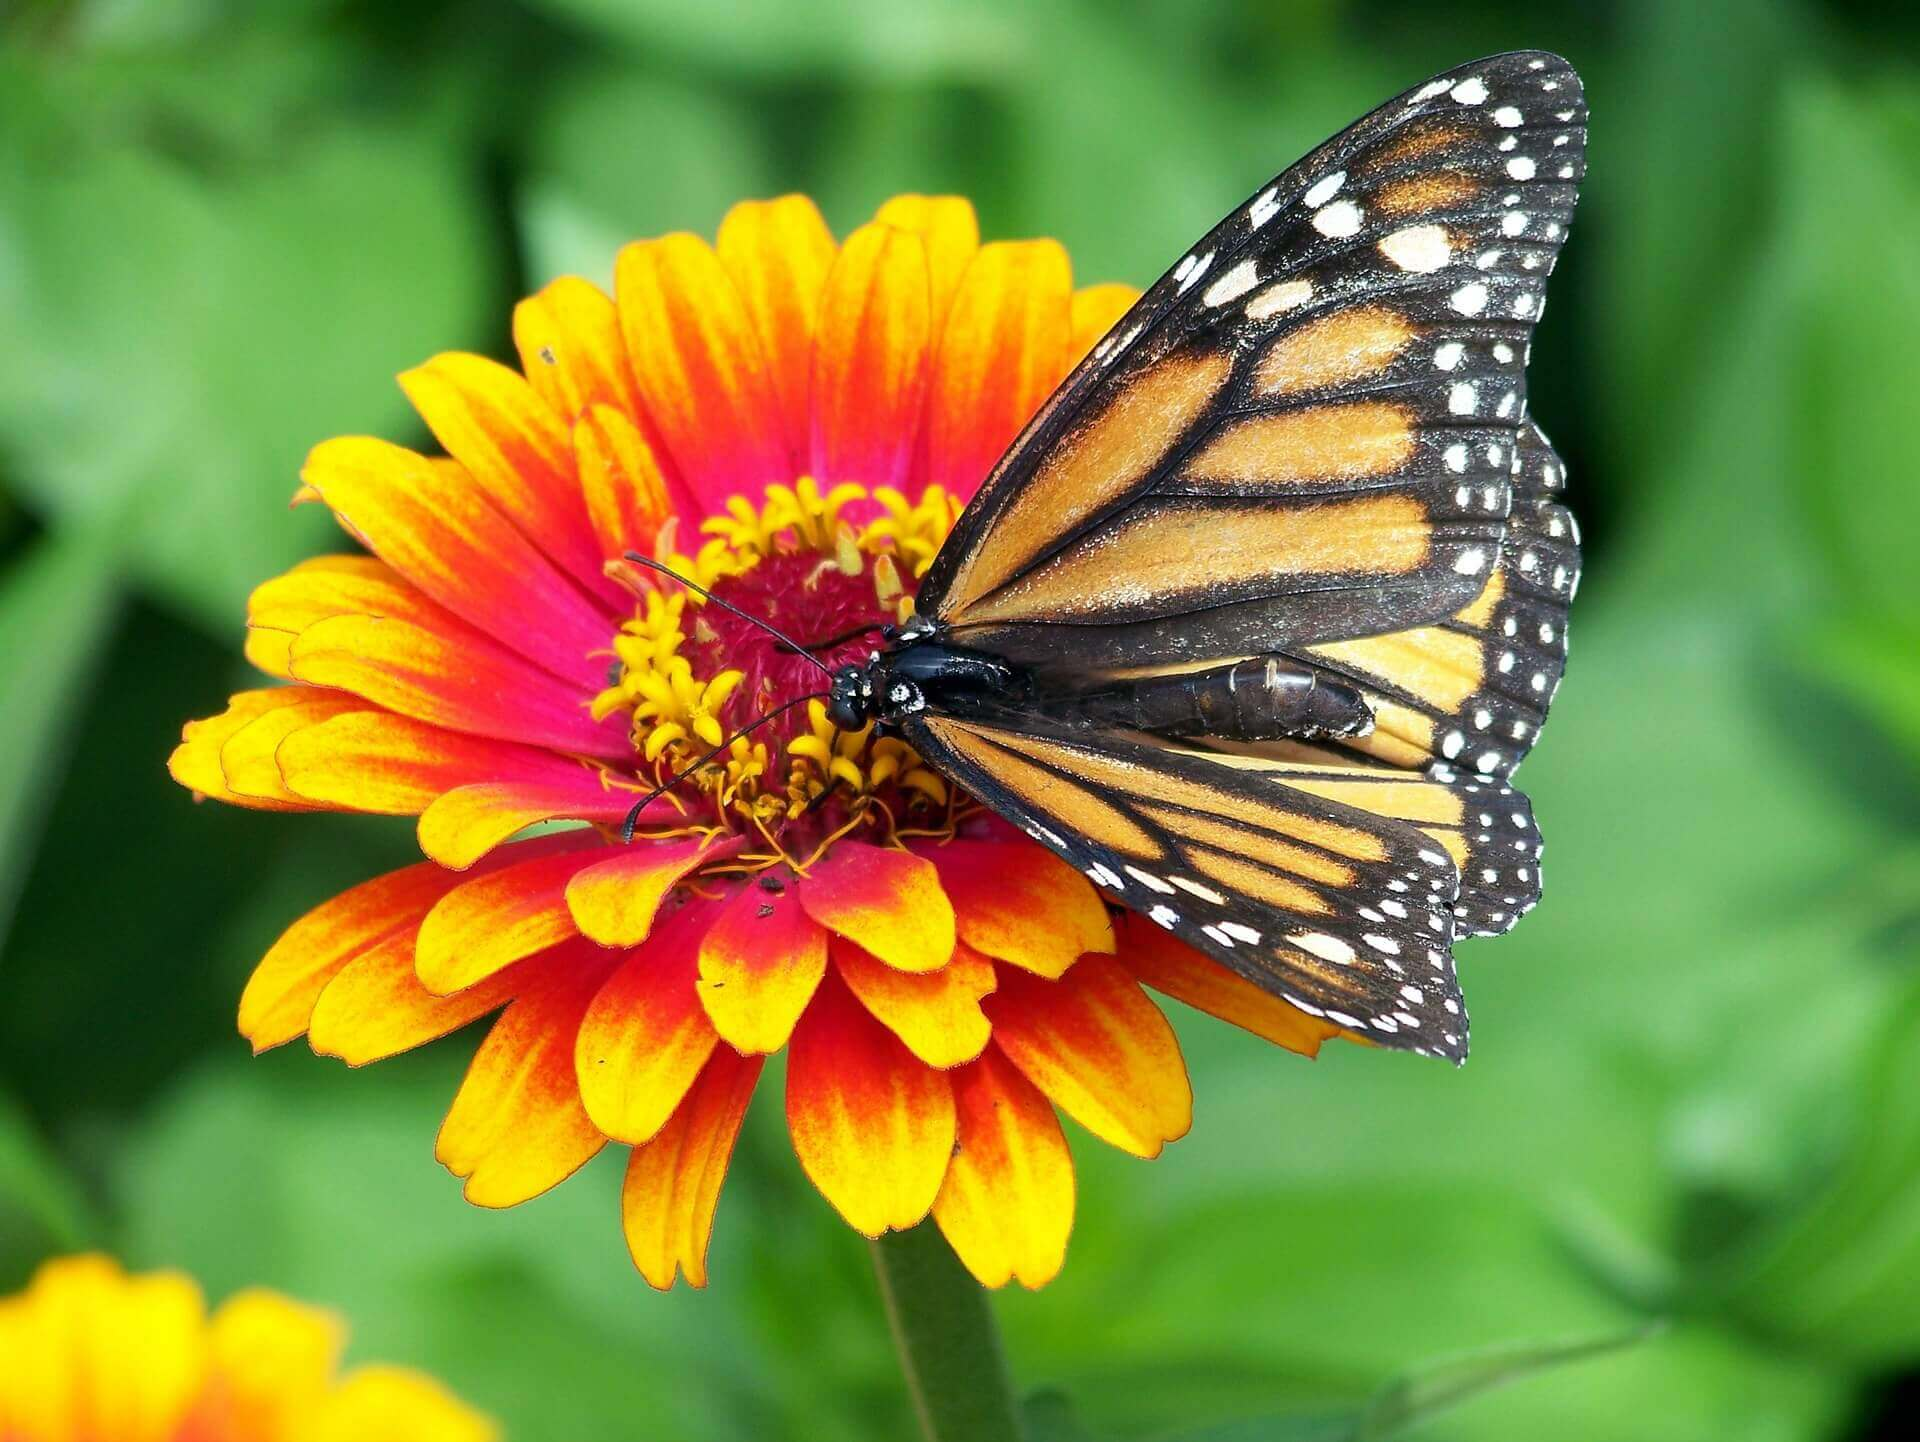 Monarch butterfly on zinnia flower.